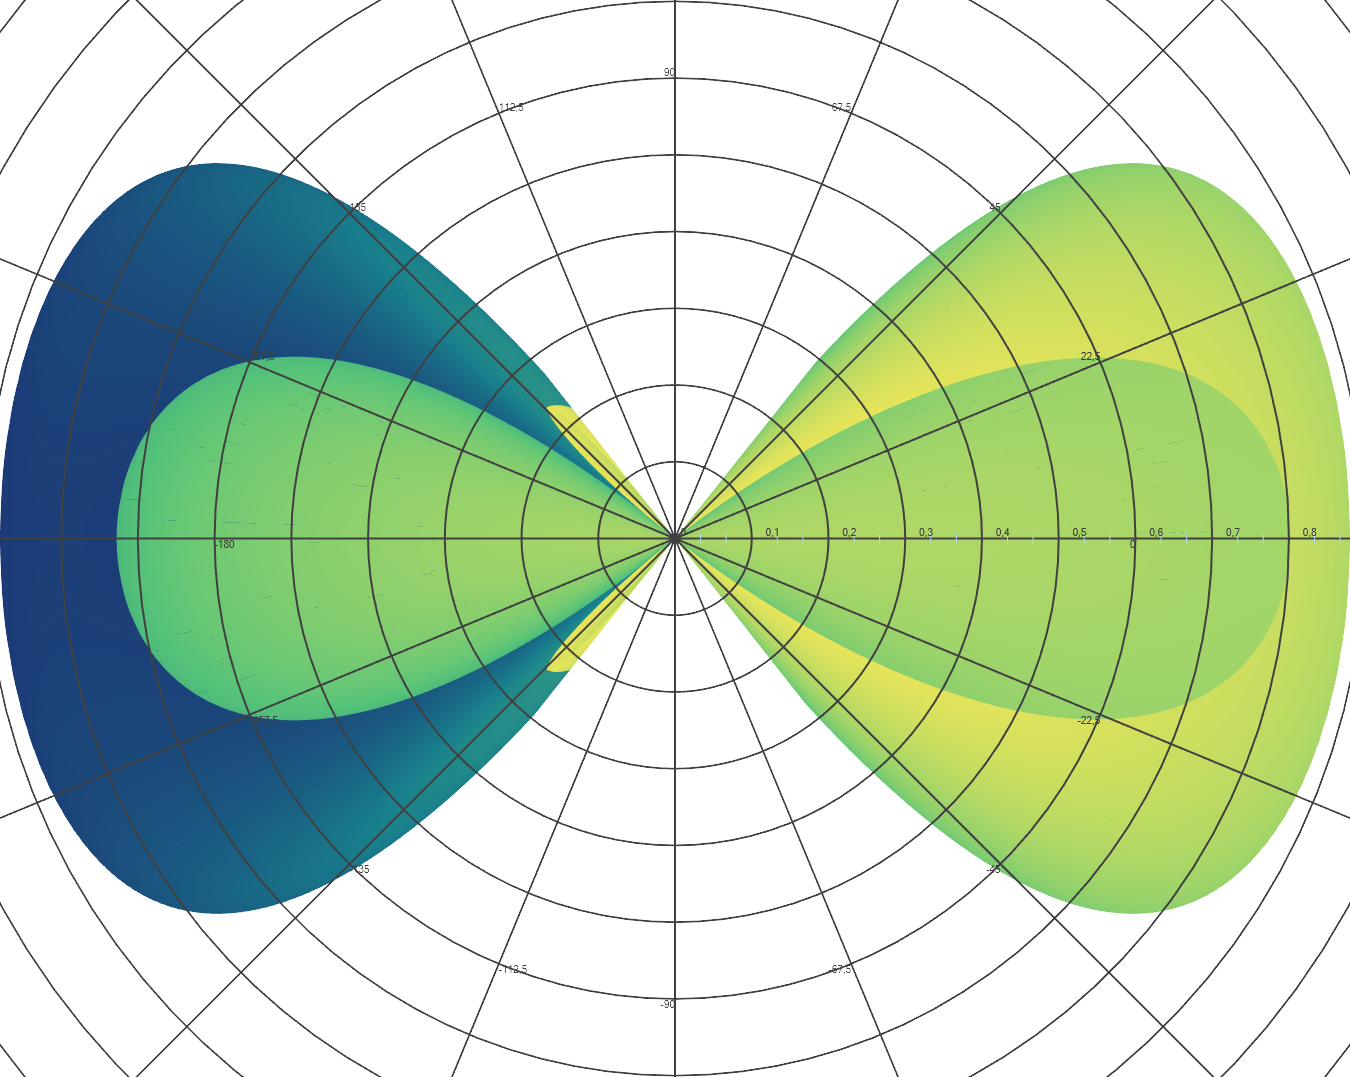 Spherical_in_XY_projection